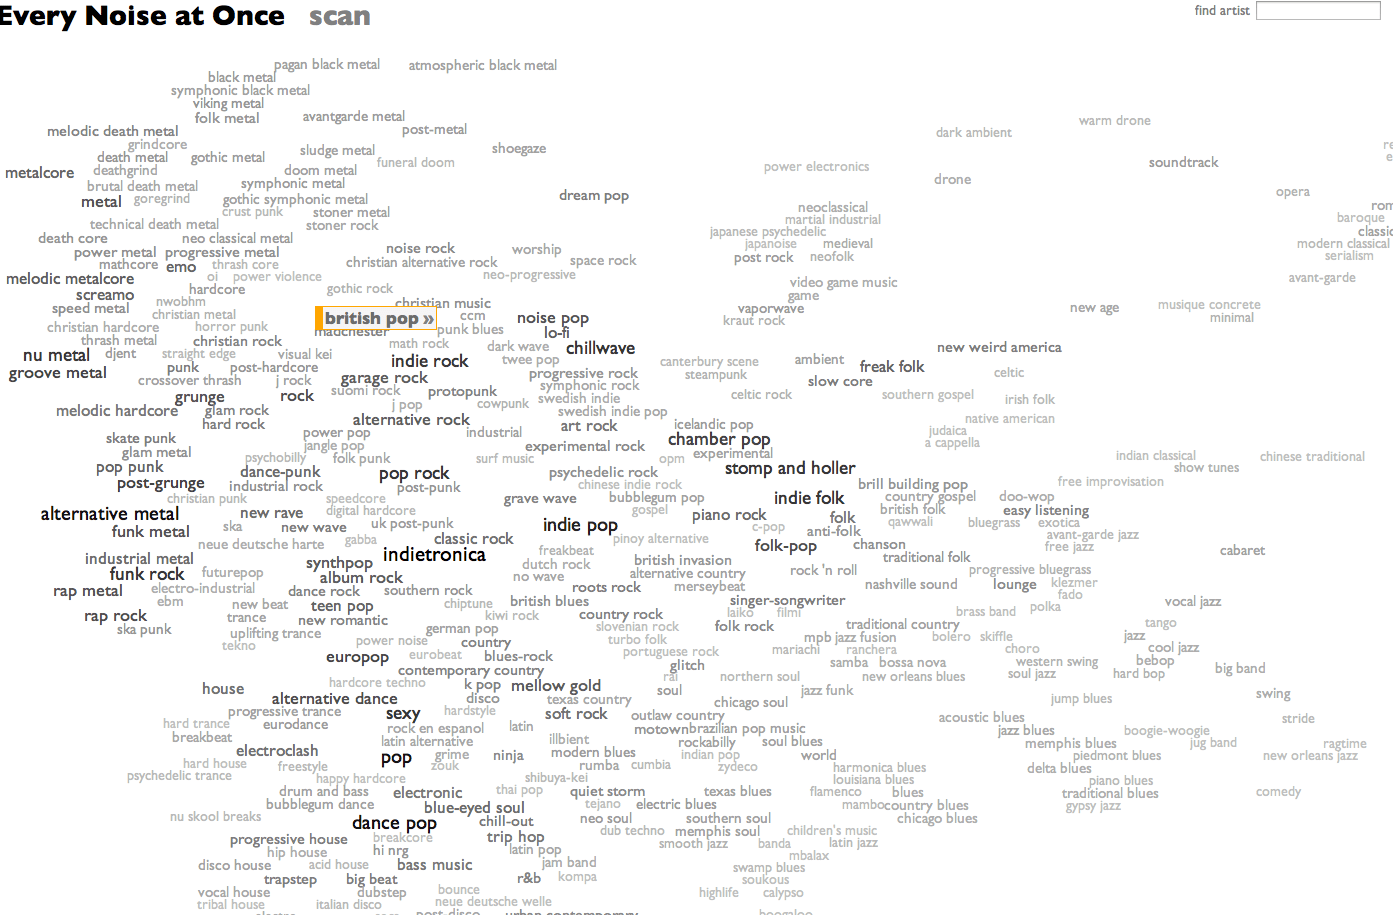 cool interactive map every genre of music in one place animus